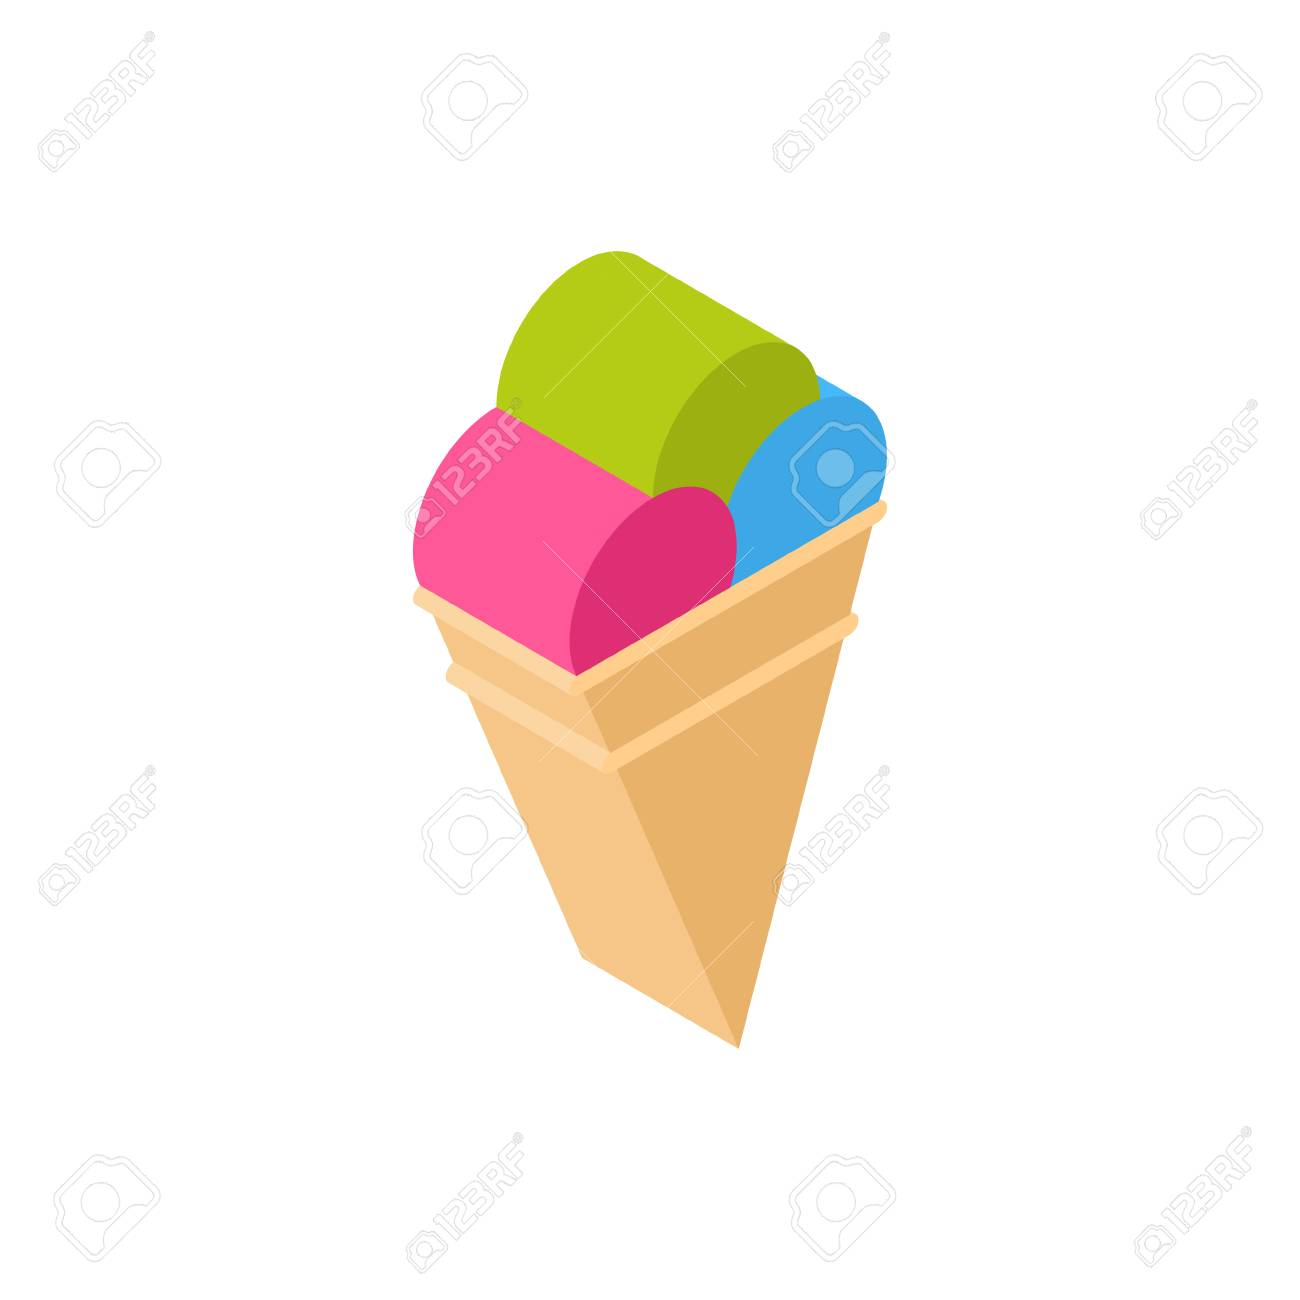 Ice Cream Cone Icon Isometric Isolated Tourism And Travel Concept Vector Illustration - 95662637